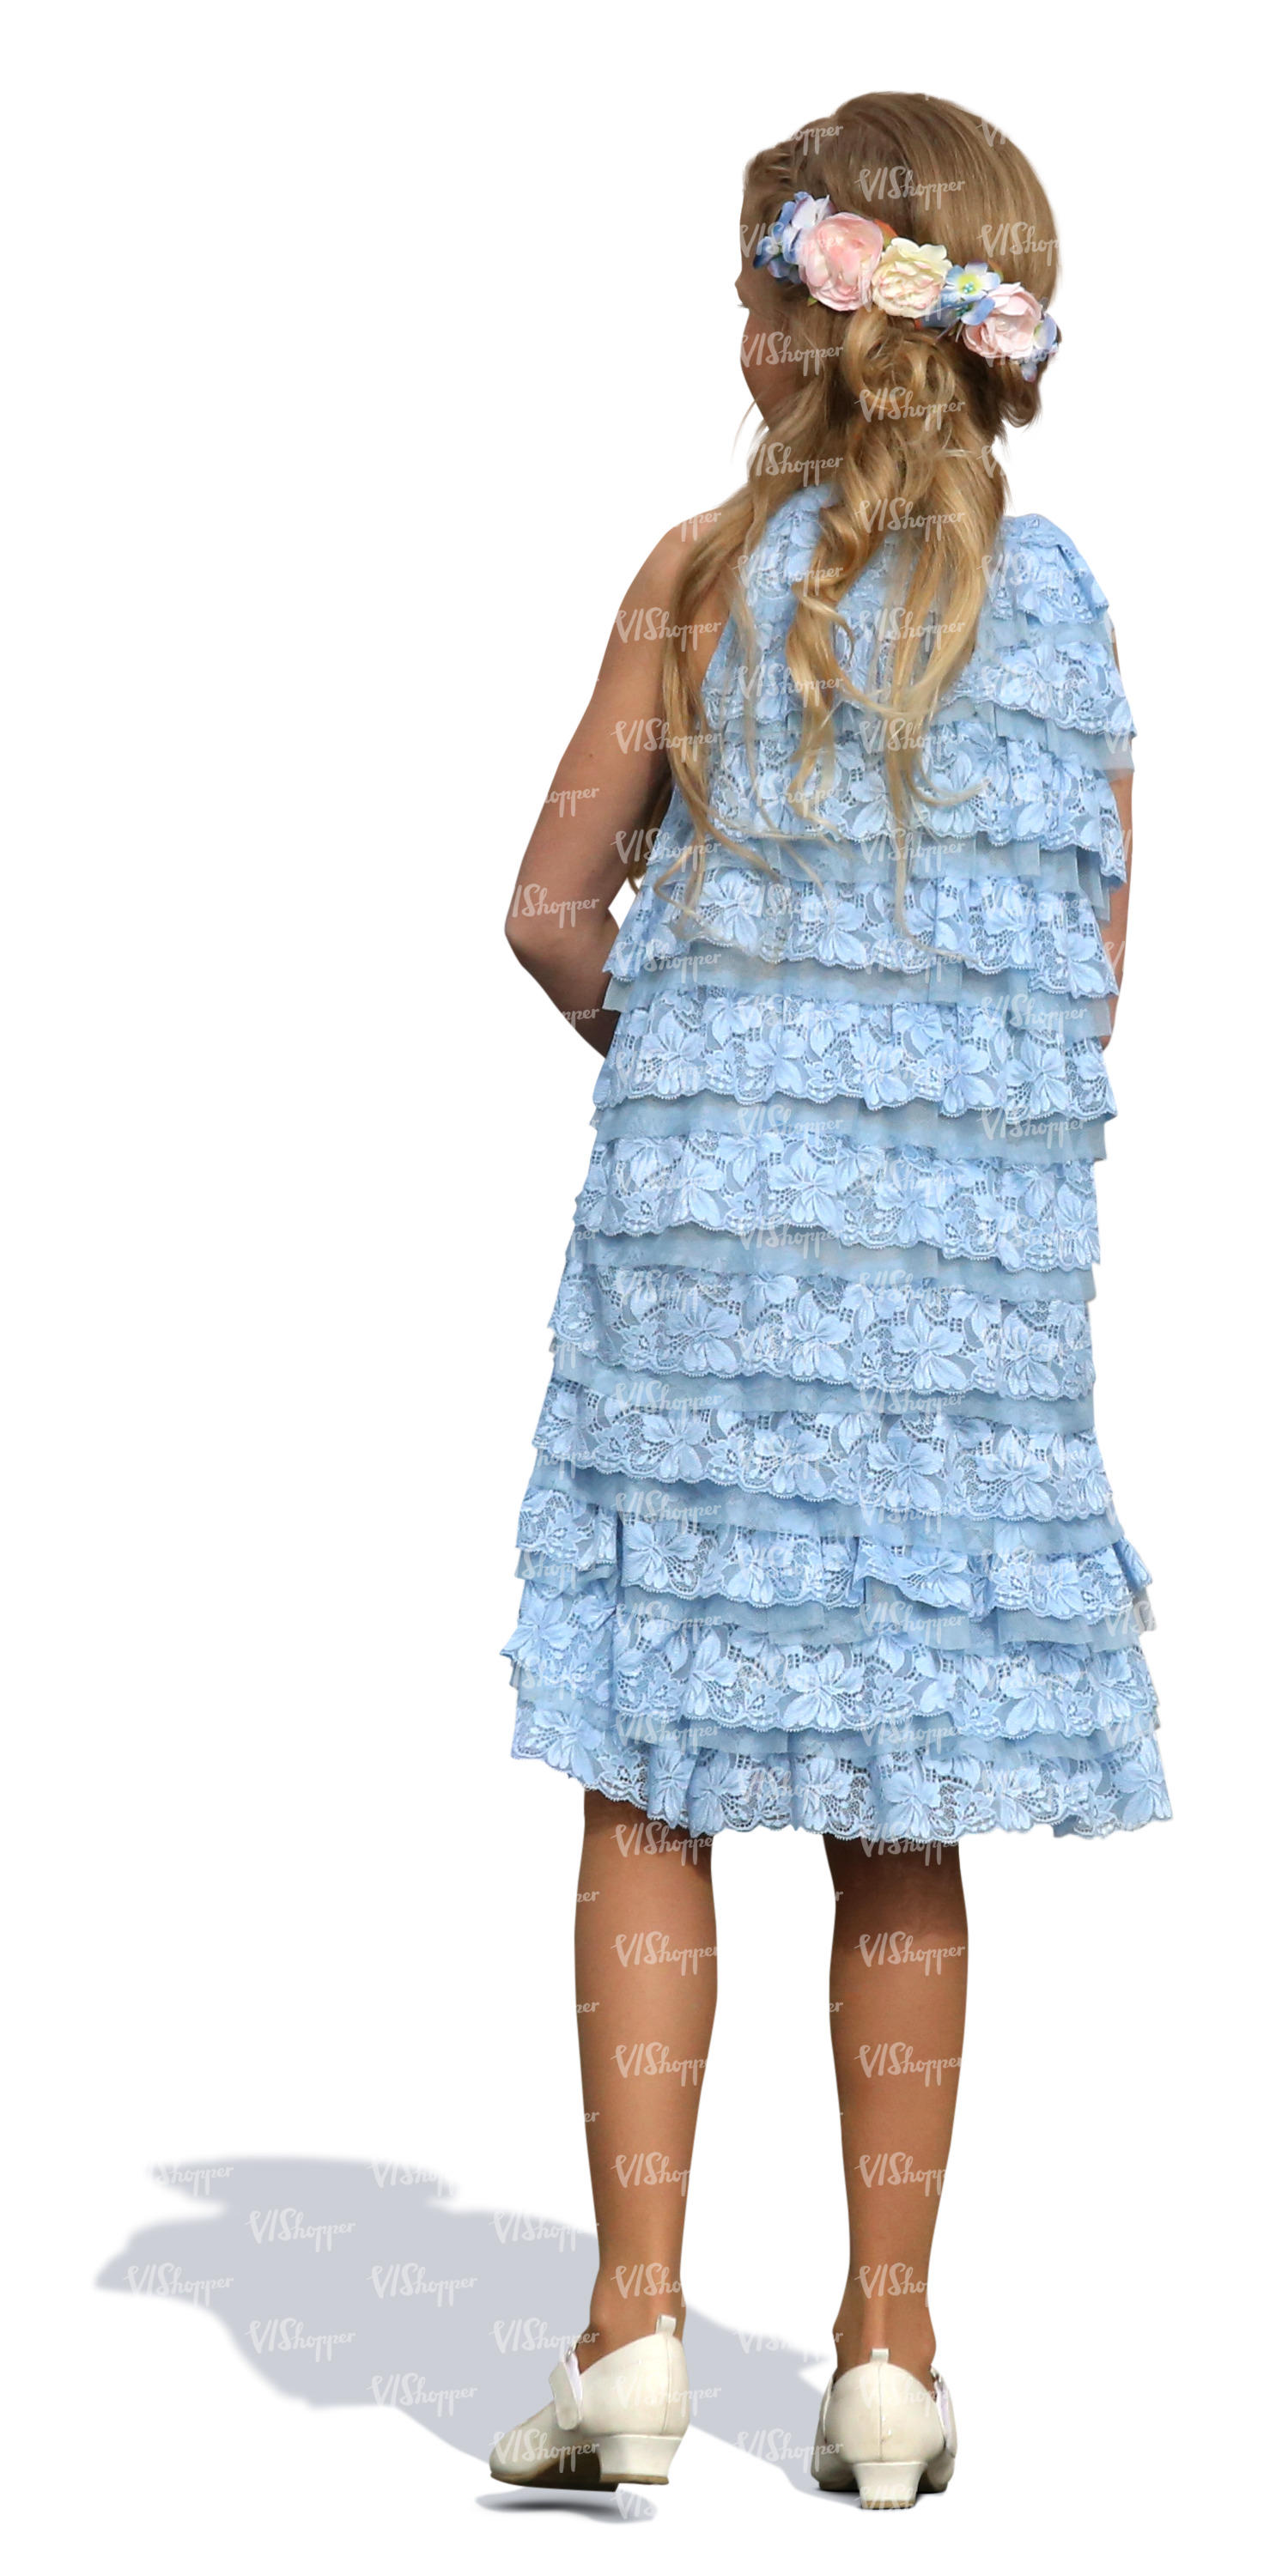 little girl in a blue party dress standing - cut out people - VIShopper